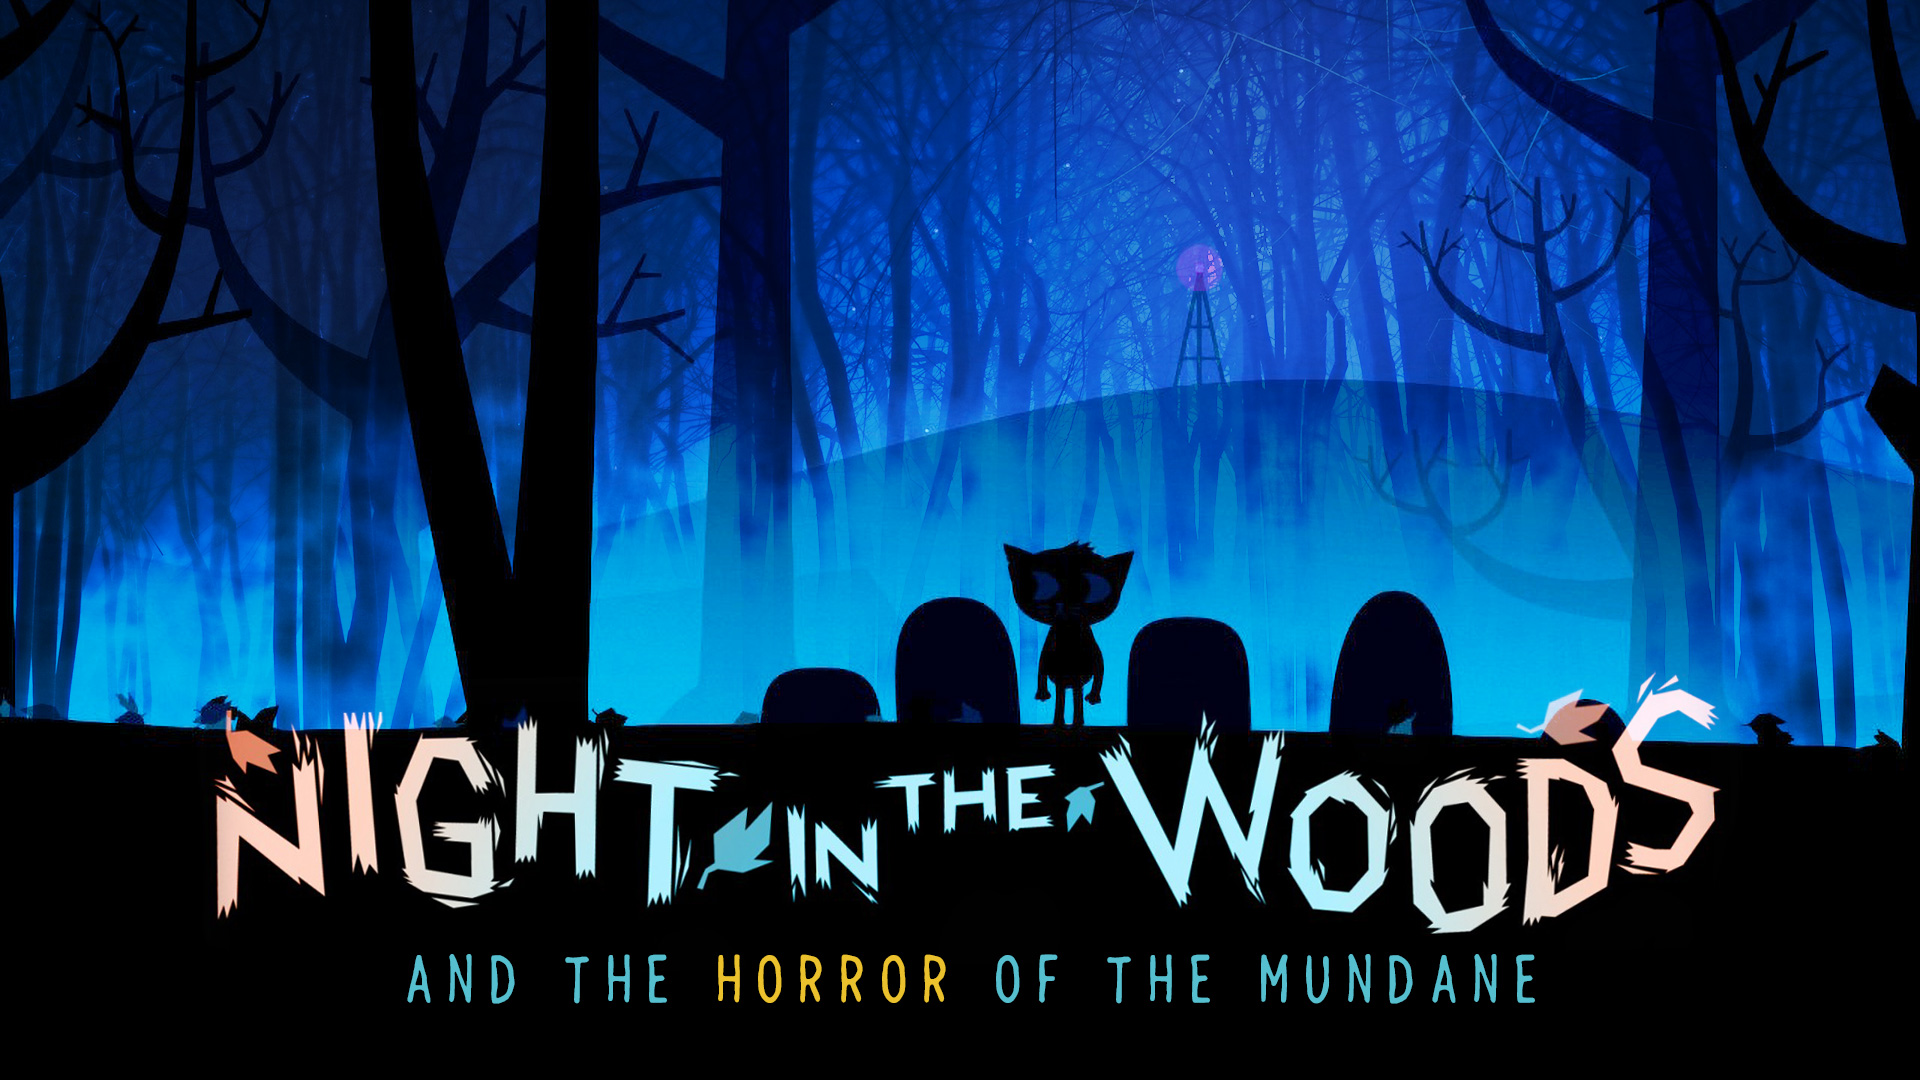 HORRORWOOD™ Presents... ''Night in the Woods' and the Horror of the Mundane'